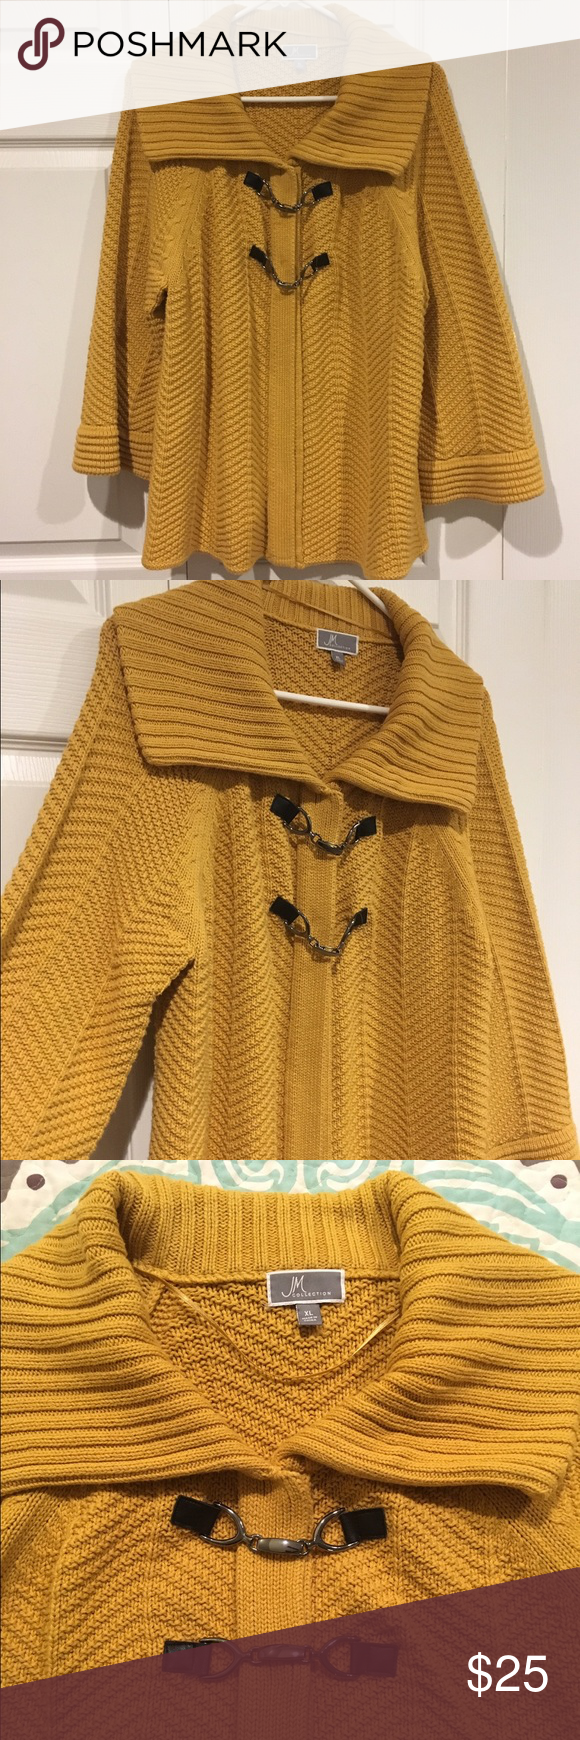 Comfy cable knit sweater cape Adorable mustard yellow long sleeve ...